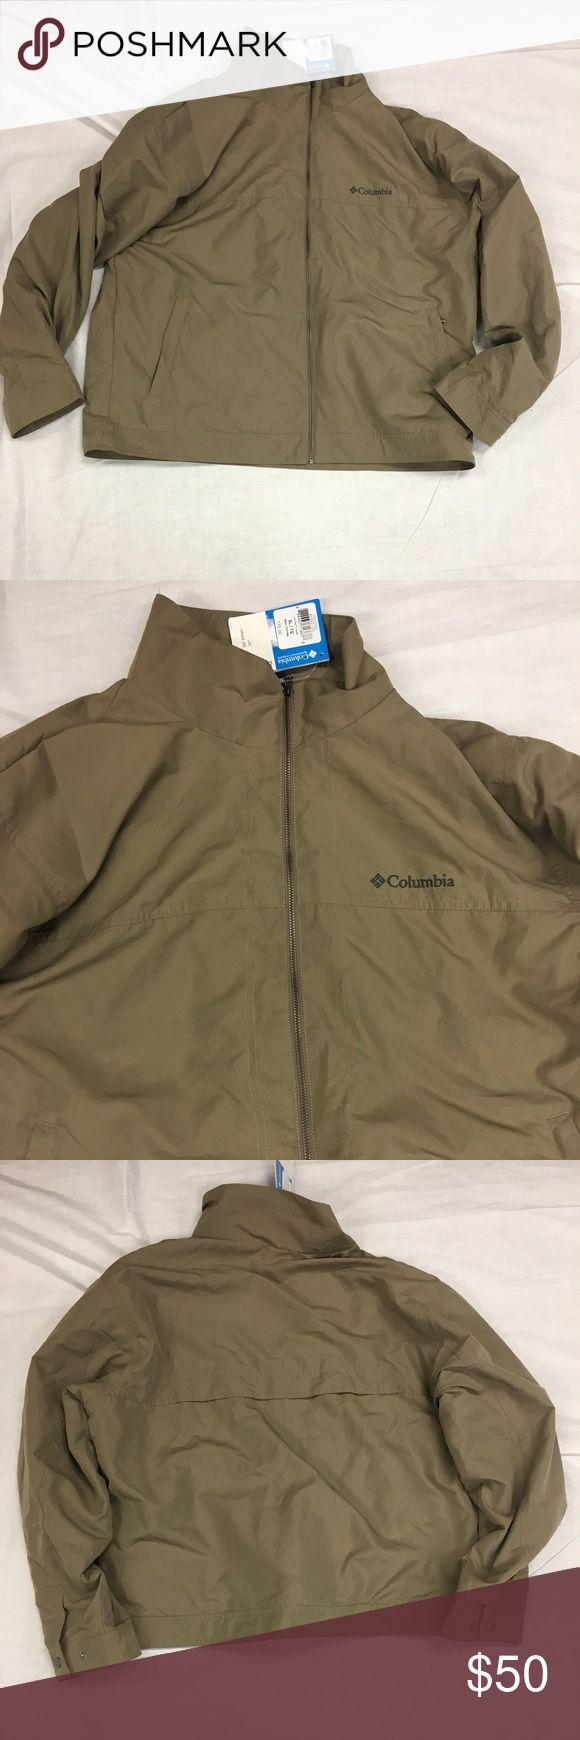 Columbia Sportswear Full Zip John Day II Jacket Columbia Sportswear Full Zip John Day II Jacket. Save money by bundling with other items in my store. Columbia Jackets & Coats Performance Jackets